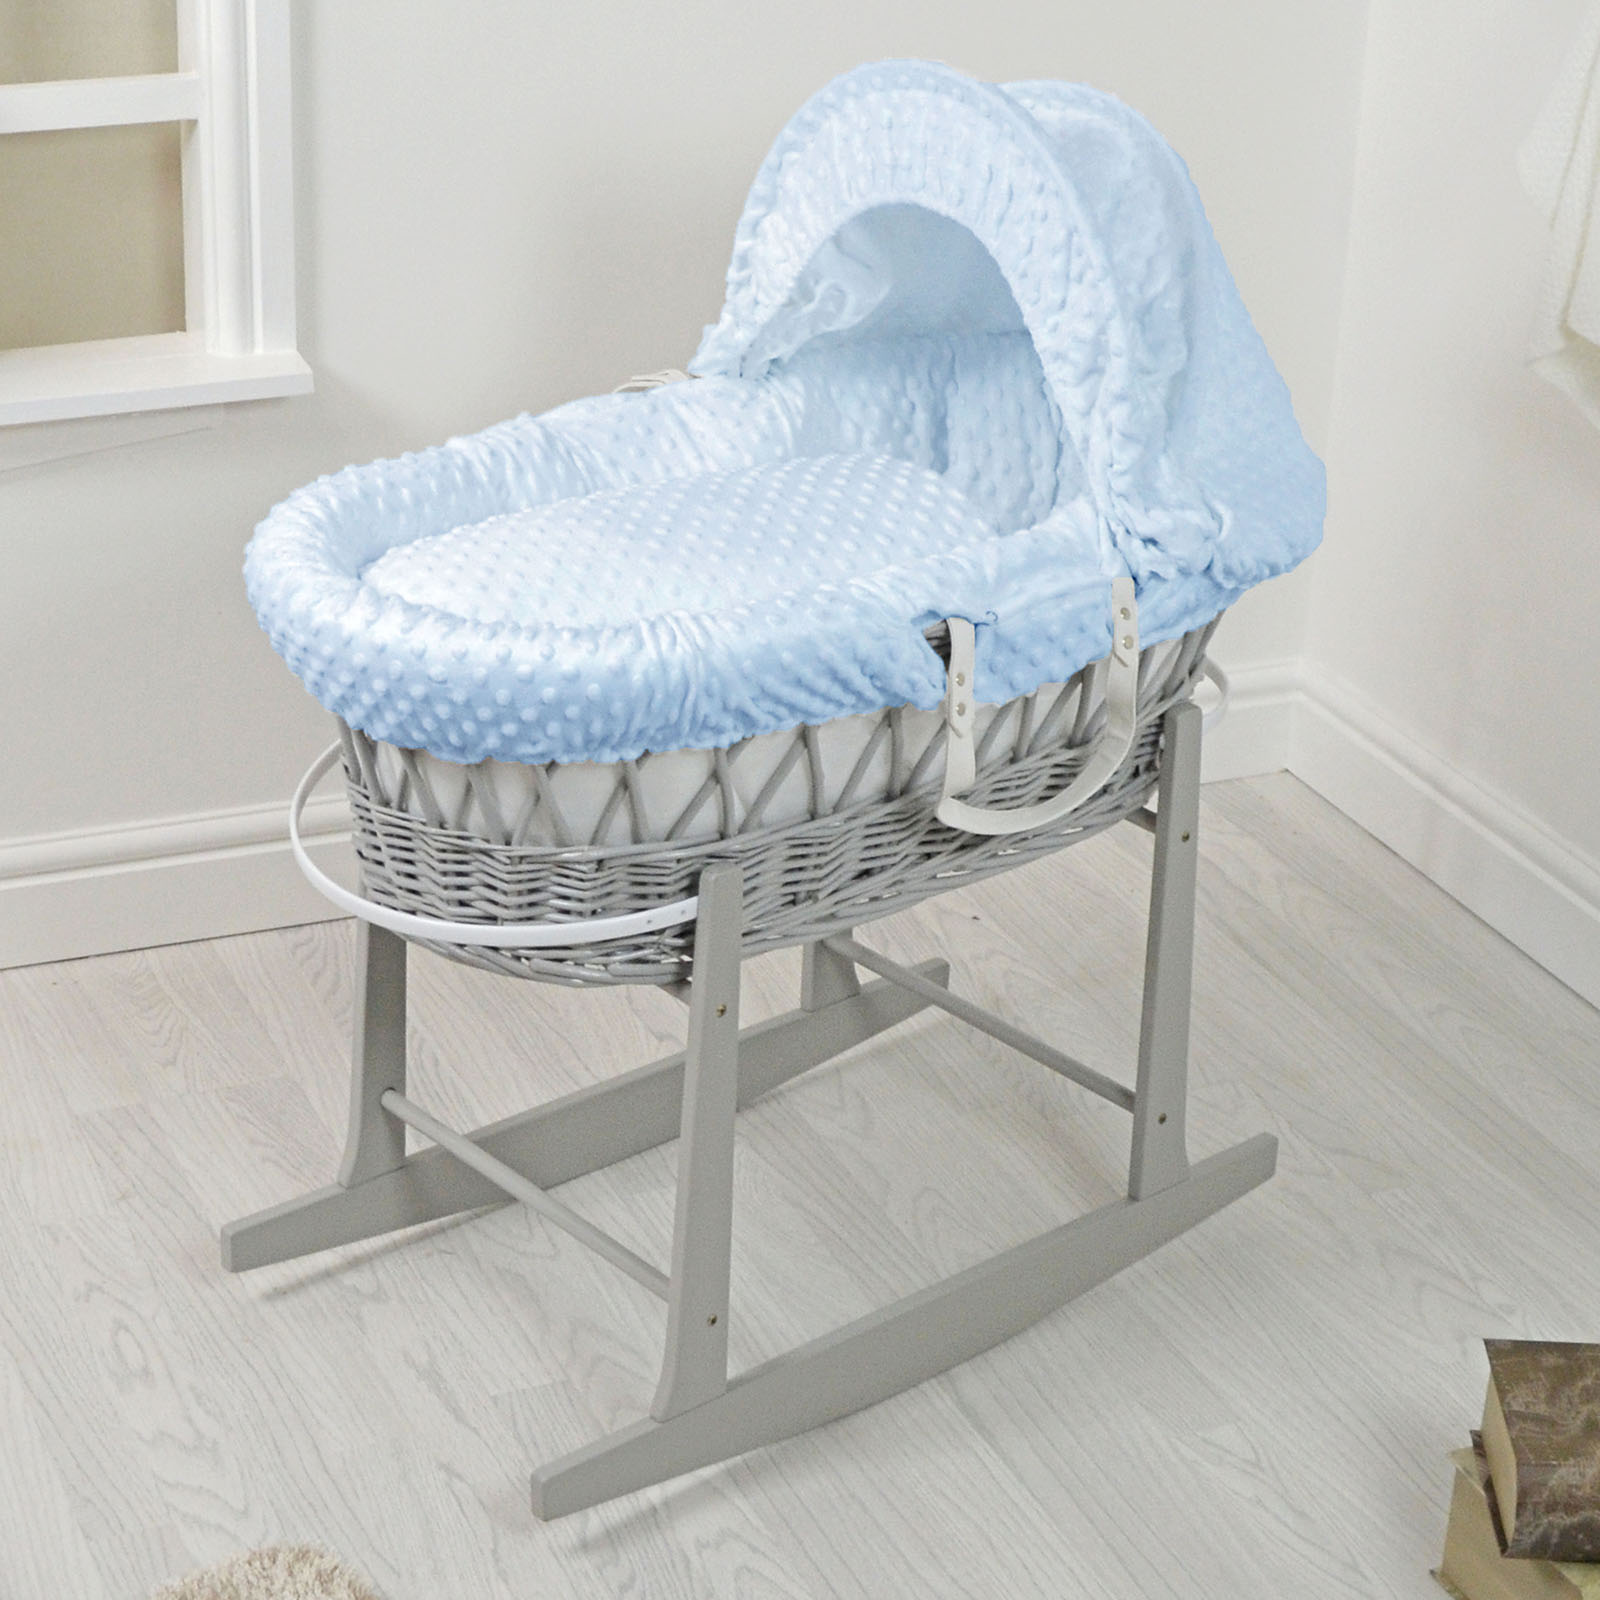 4baby padded grey wicker moses basket u0026 rocking stand - blue KDSYFIJ